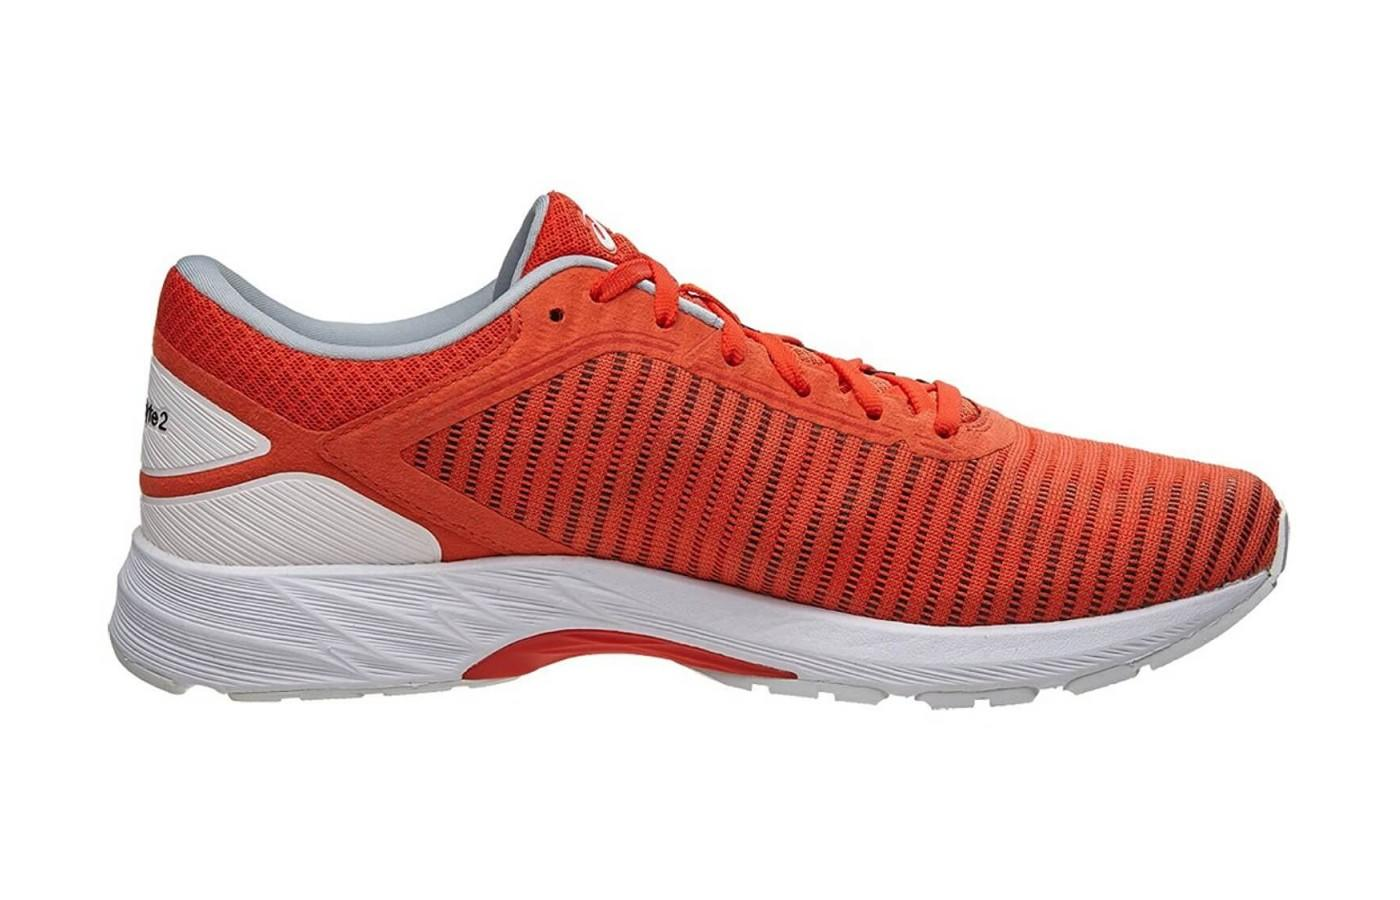 Runners loved the stylish look and multiple color options.